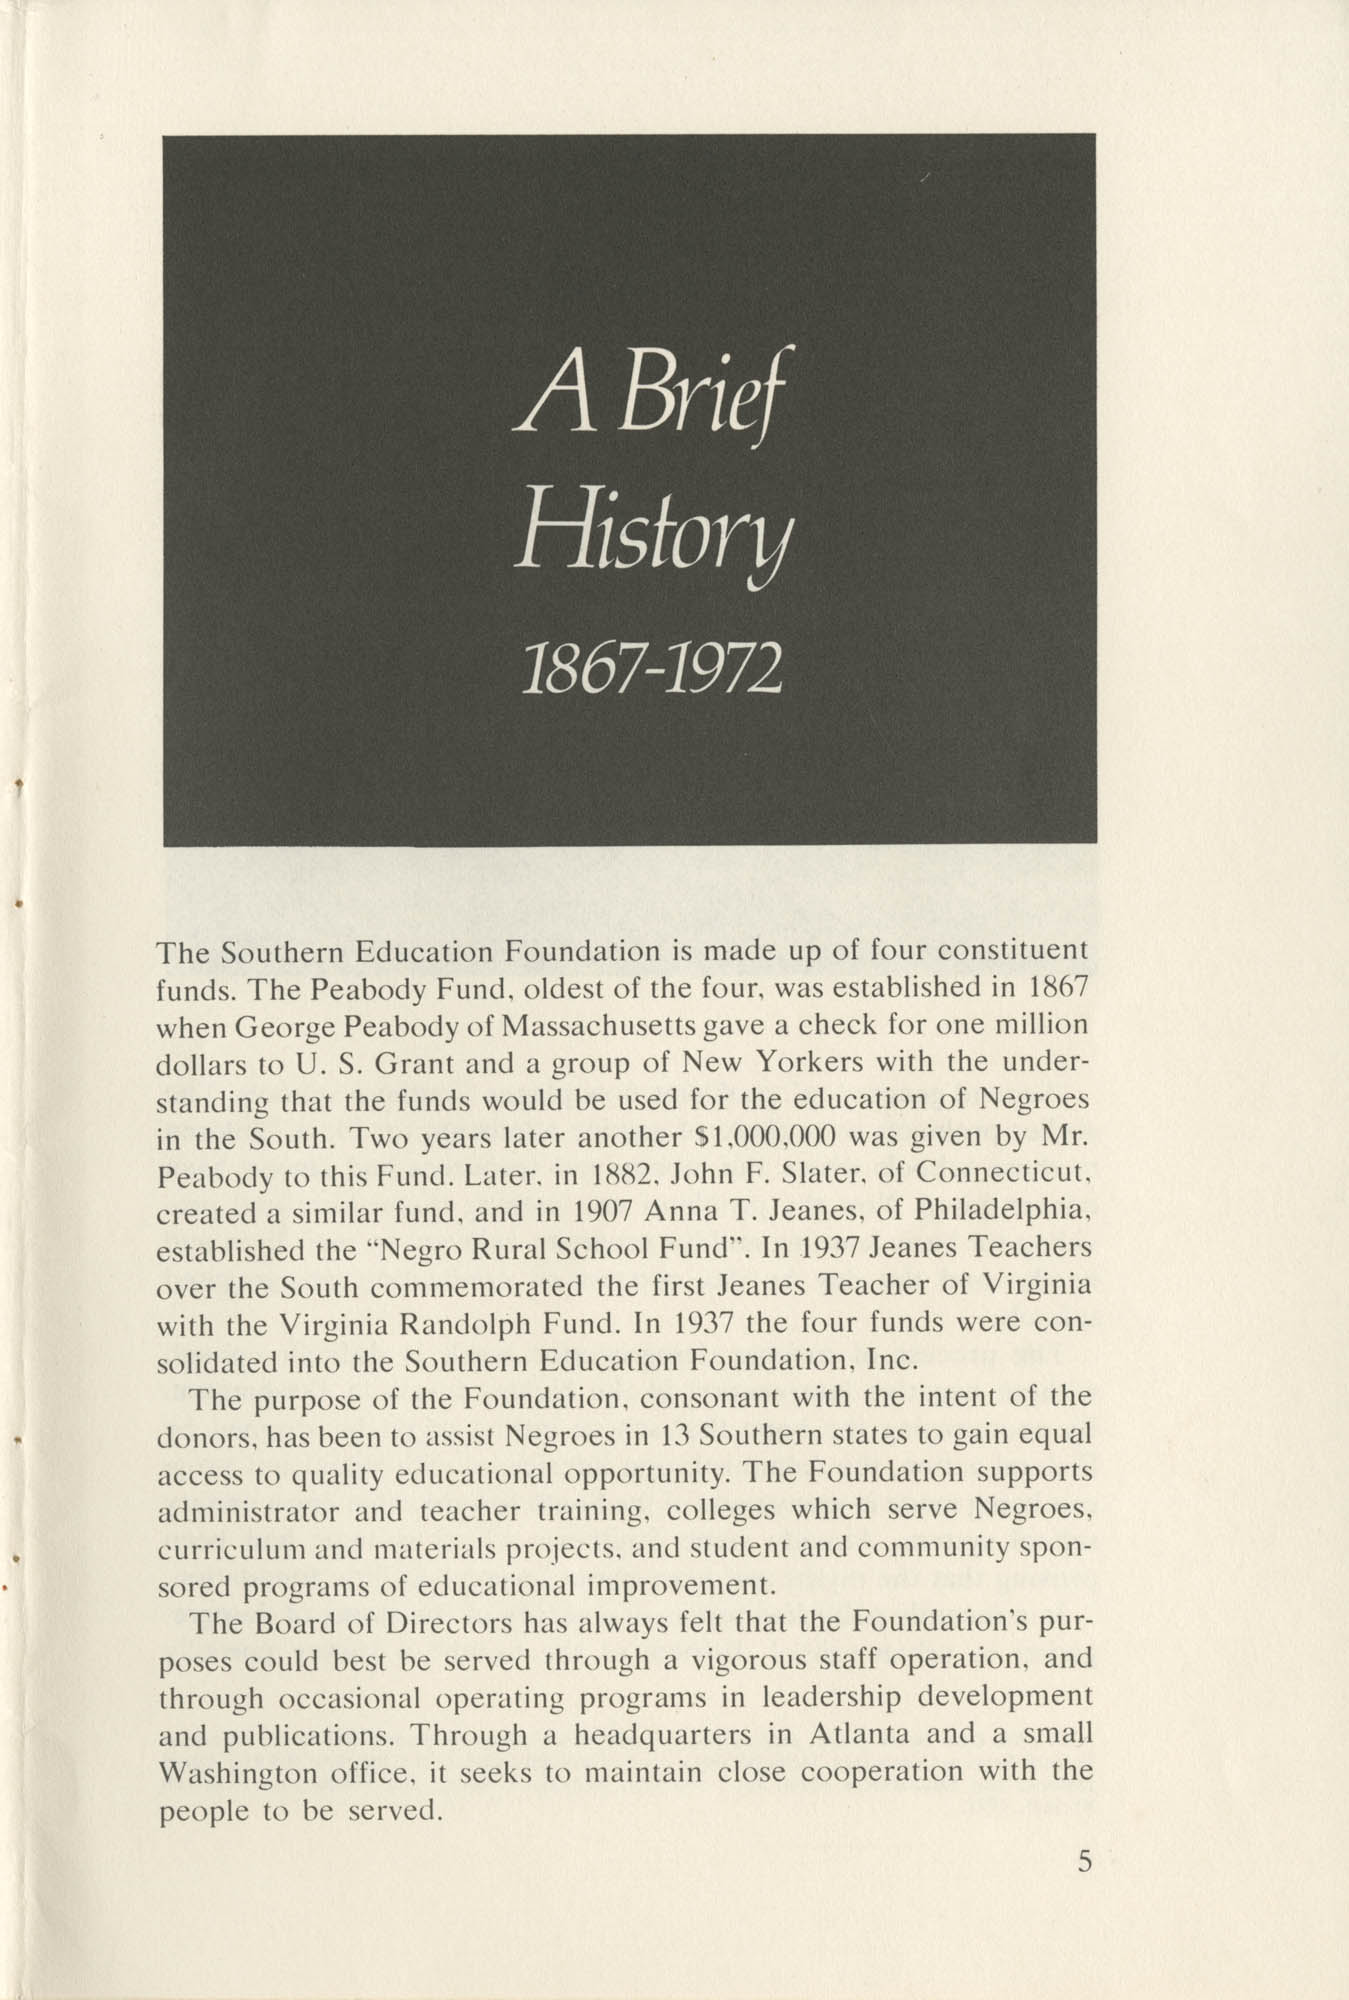 Southern Education Foundation, Annual Report 1971-1972, Page 5